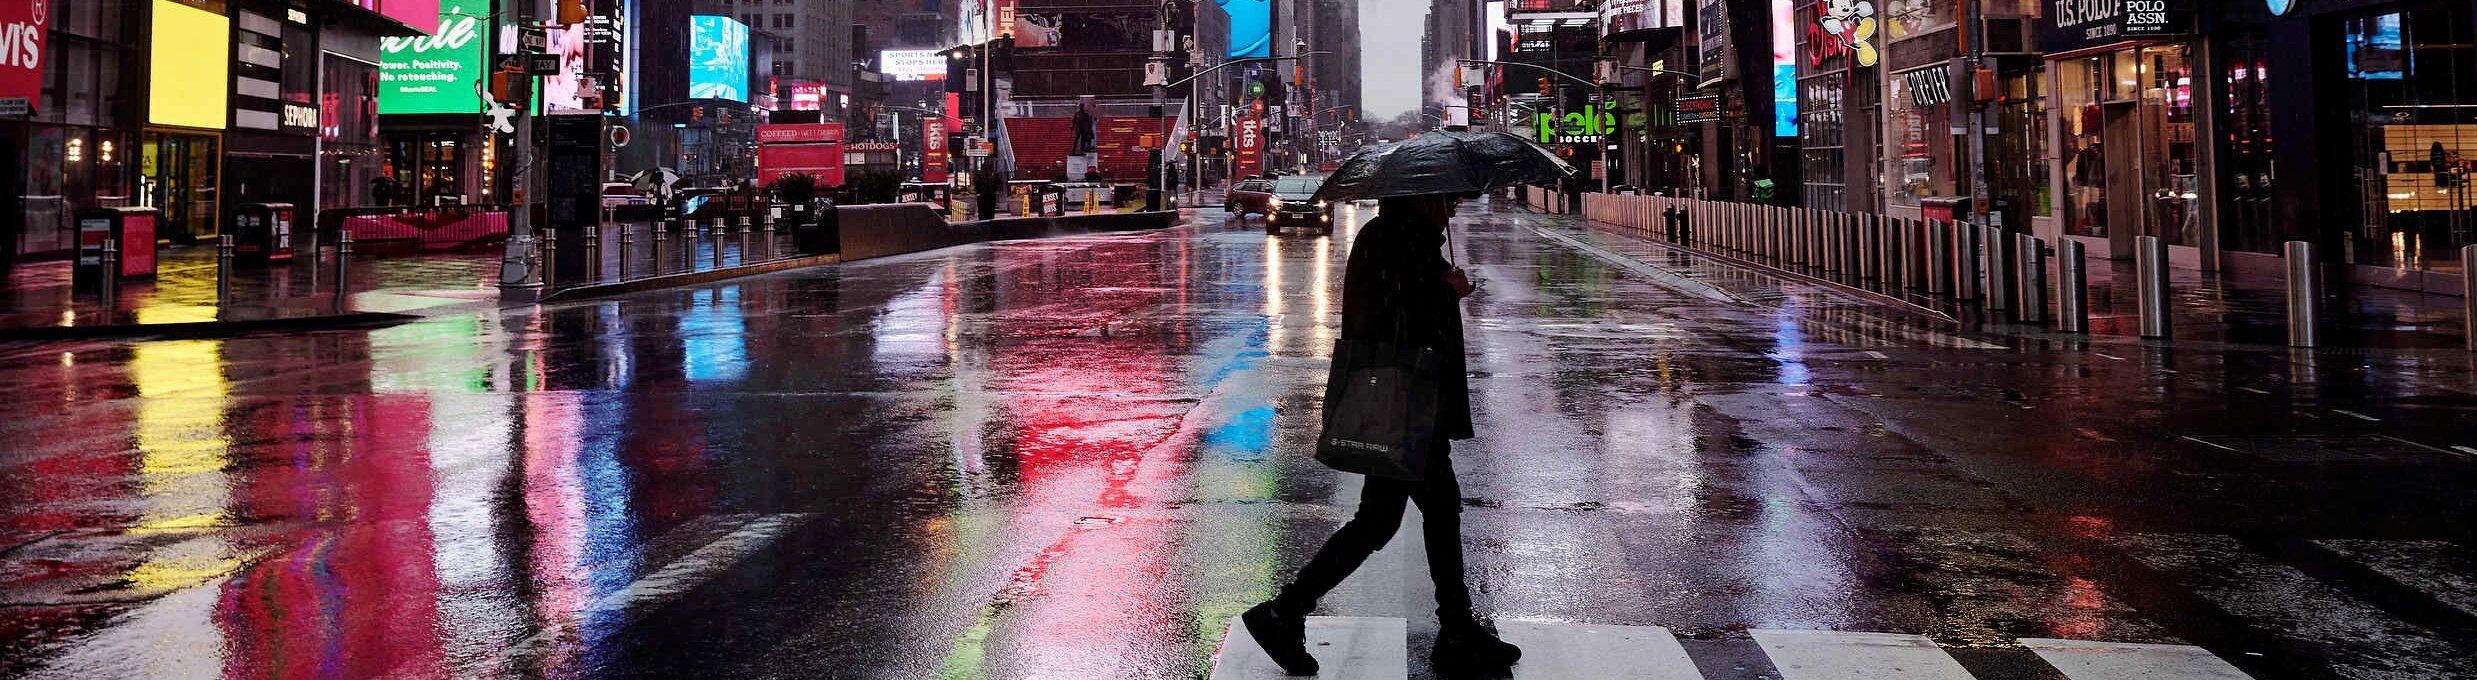 28.03.2020, USA, New York: 6207213 28.03.2020 Lone person crossing street at empty Times Square during the outbreak of coronavirus disease (COVID-19), in New York, United States.